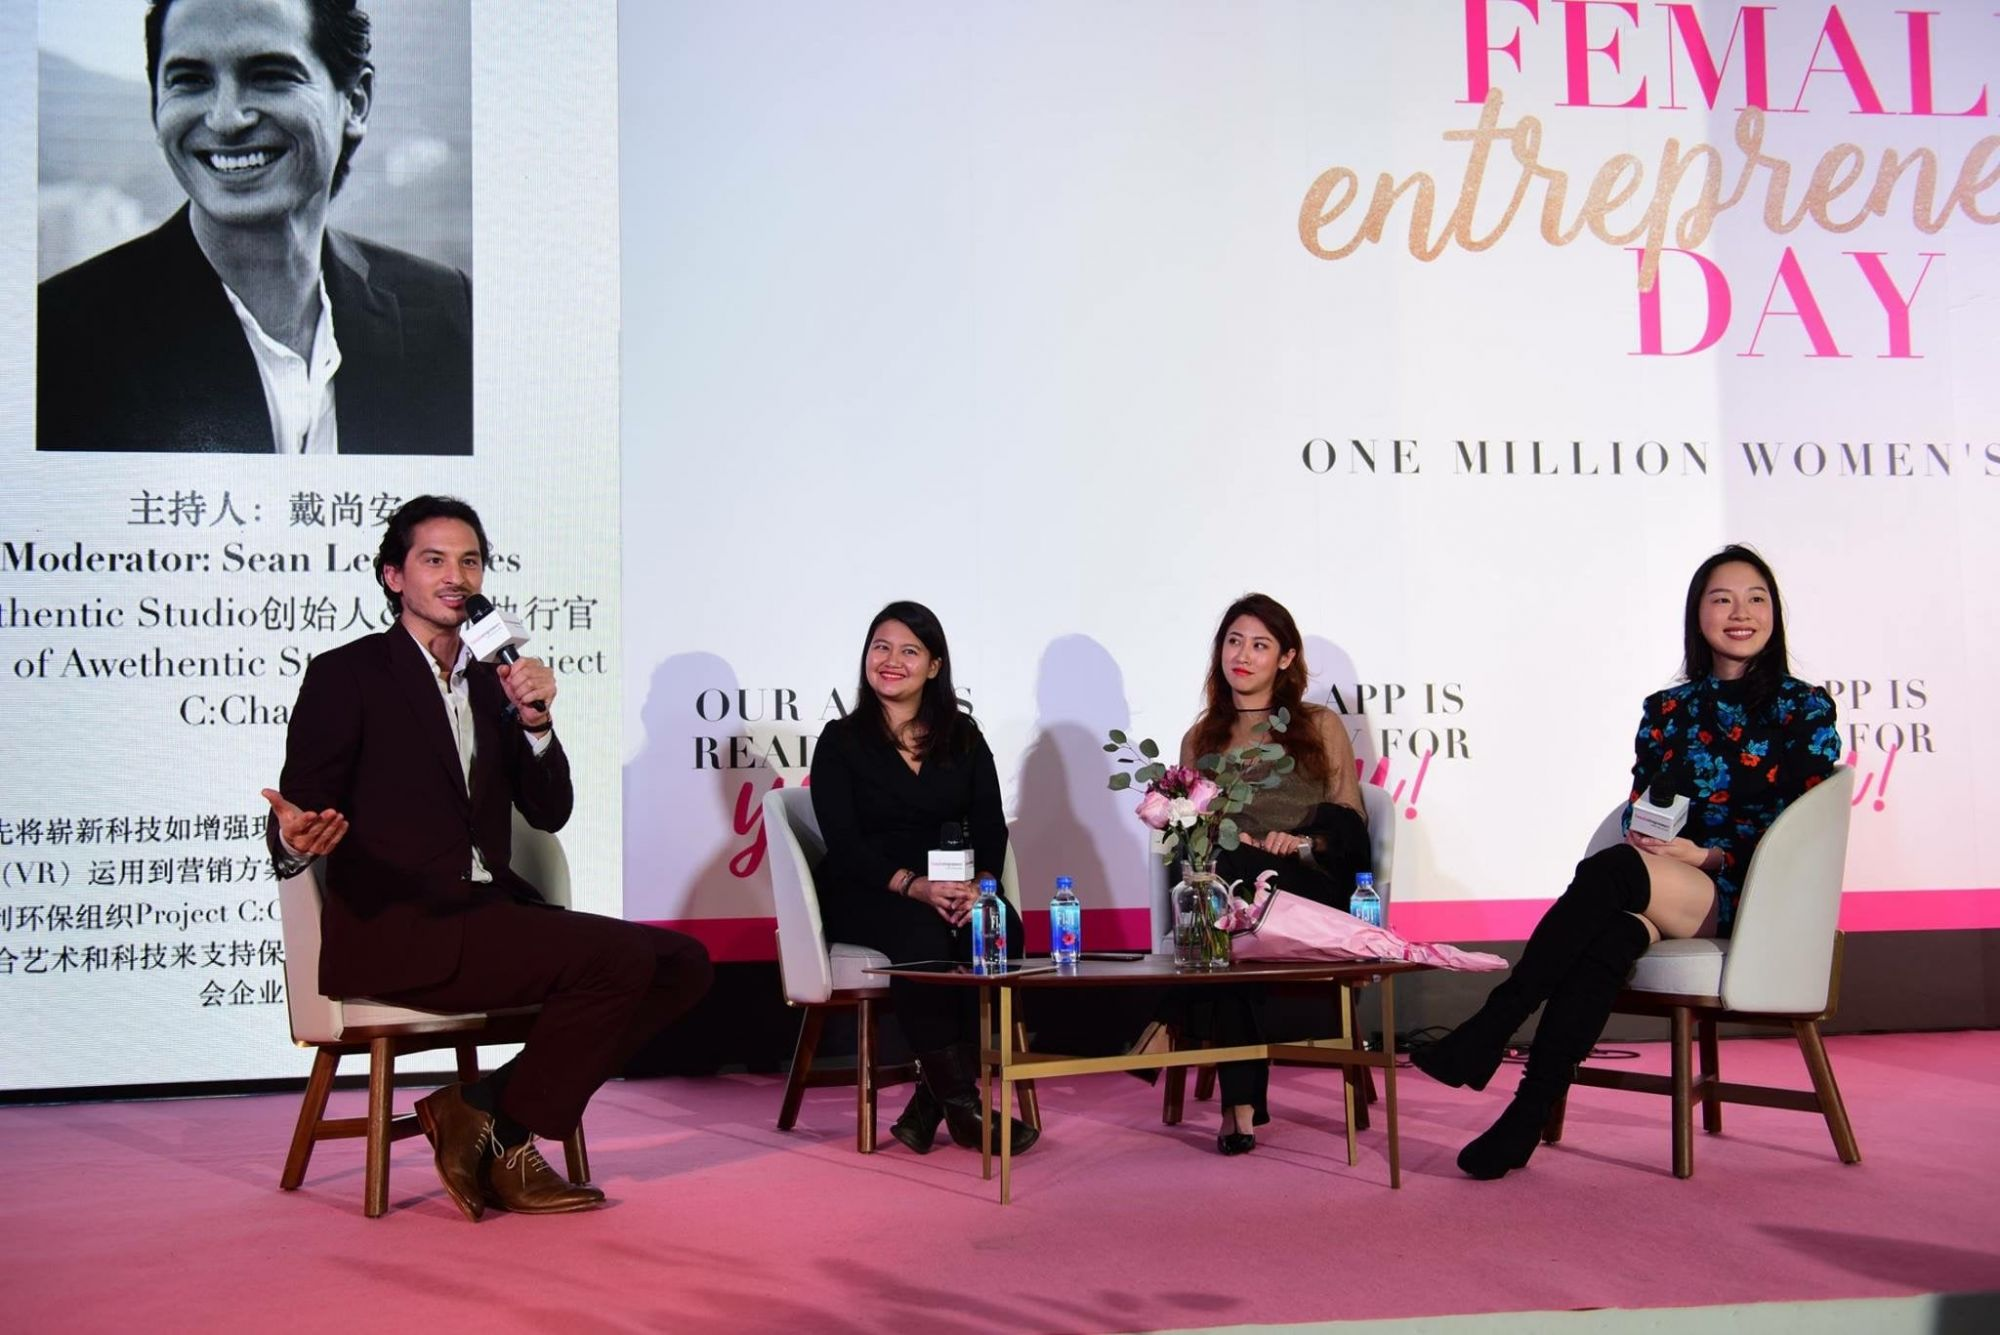 5 Reasons You Should Go To Female Entrepreneurs Day